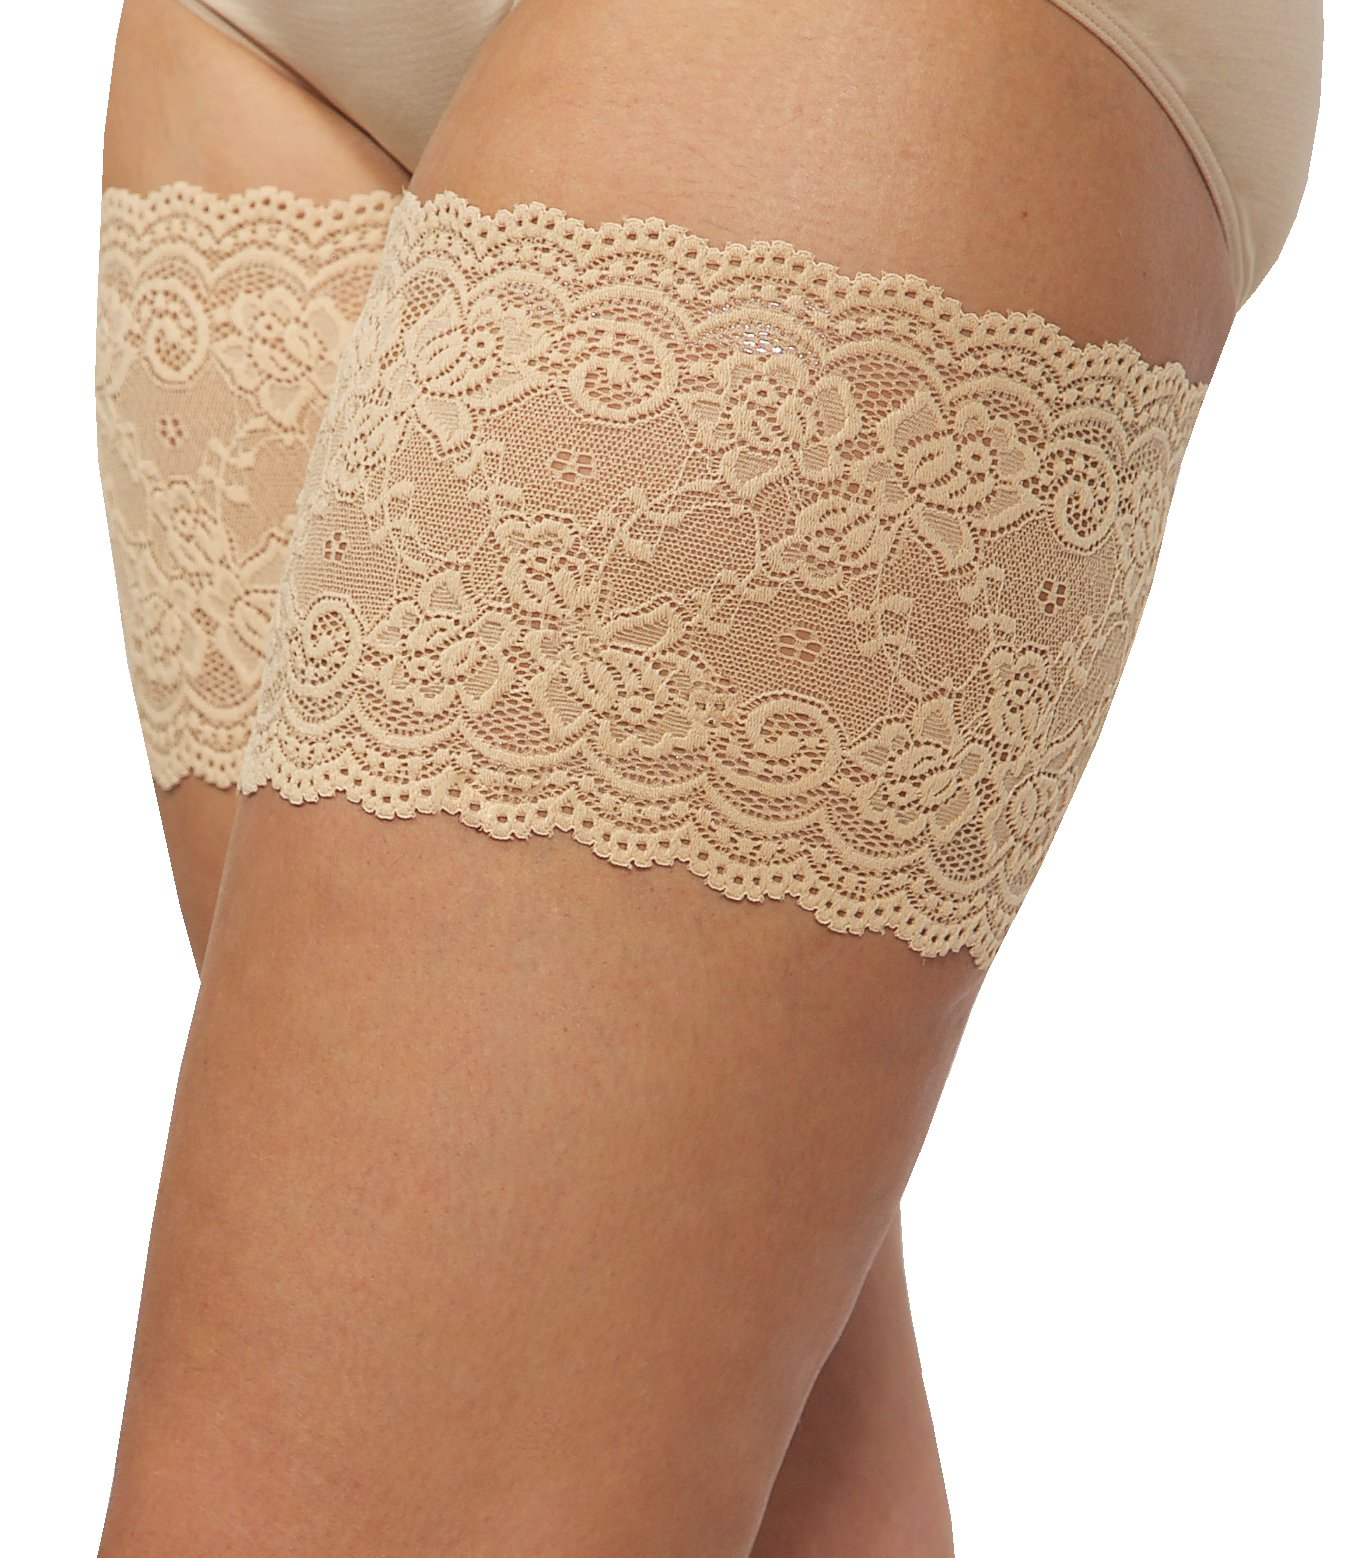 Bandelettes Elastic Anti-Chafing Thigh Bands - Prevent Thigh Chafing - Beige Onyx, Size B